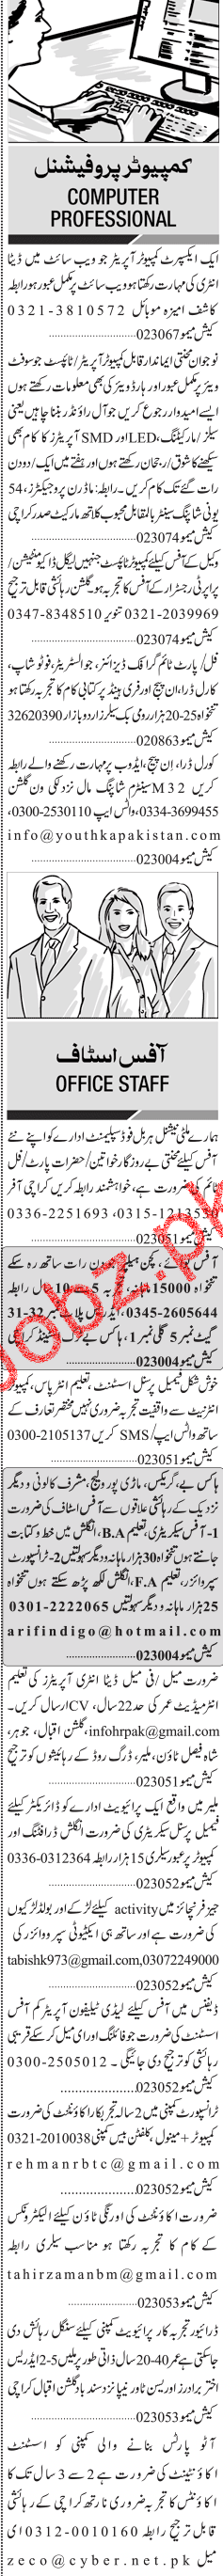 Sunday Jang Classified Computer Professional Jobs